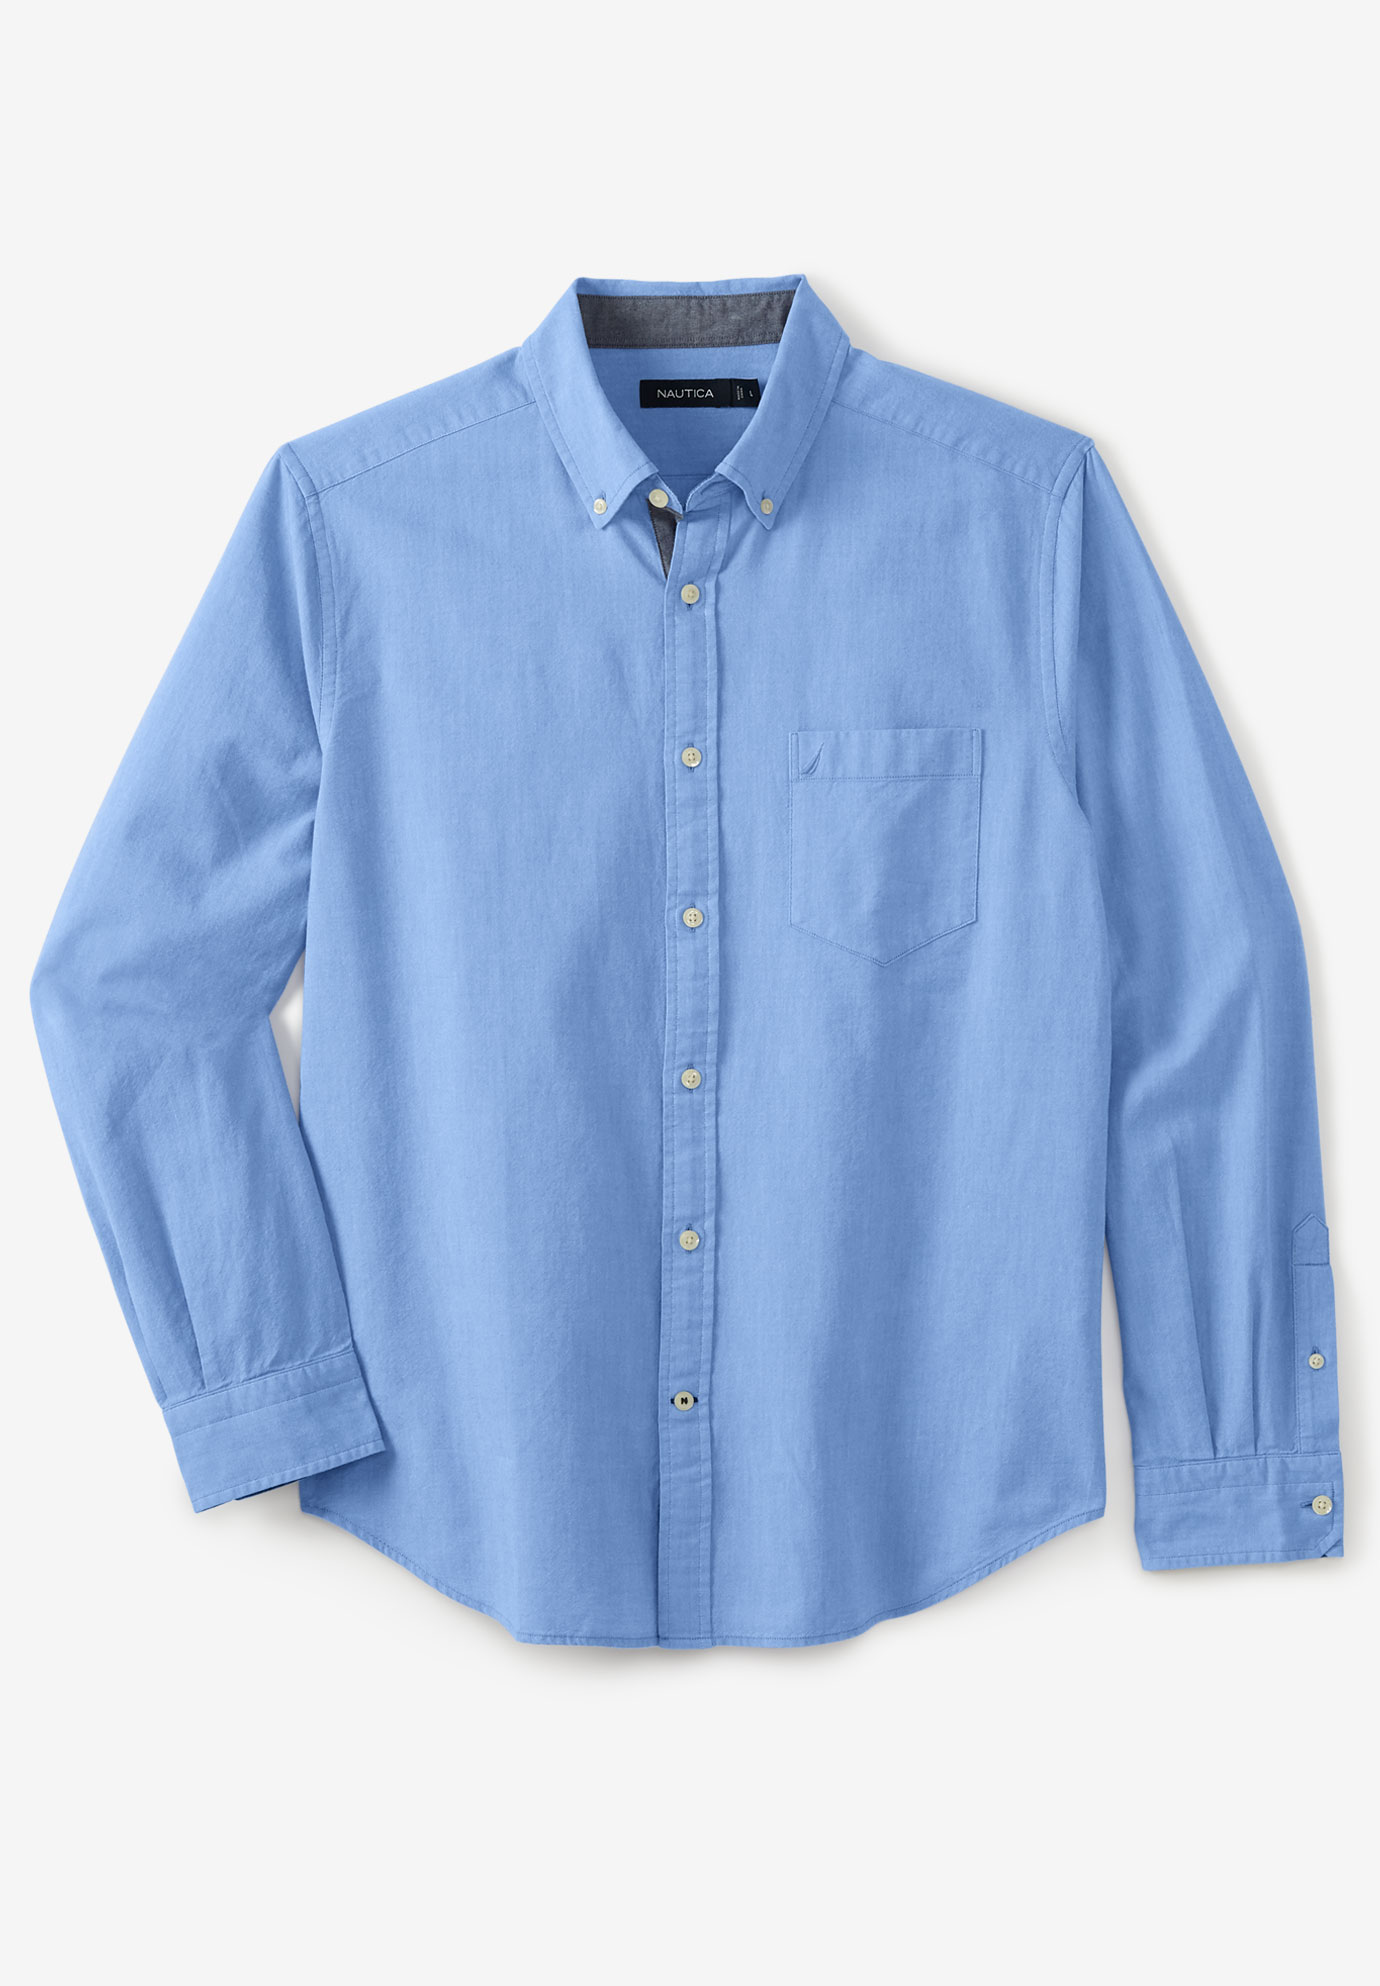 Nautica® Classic Fit Stretch Oxford Shirt,